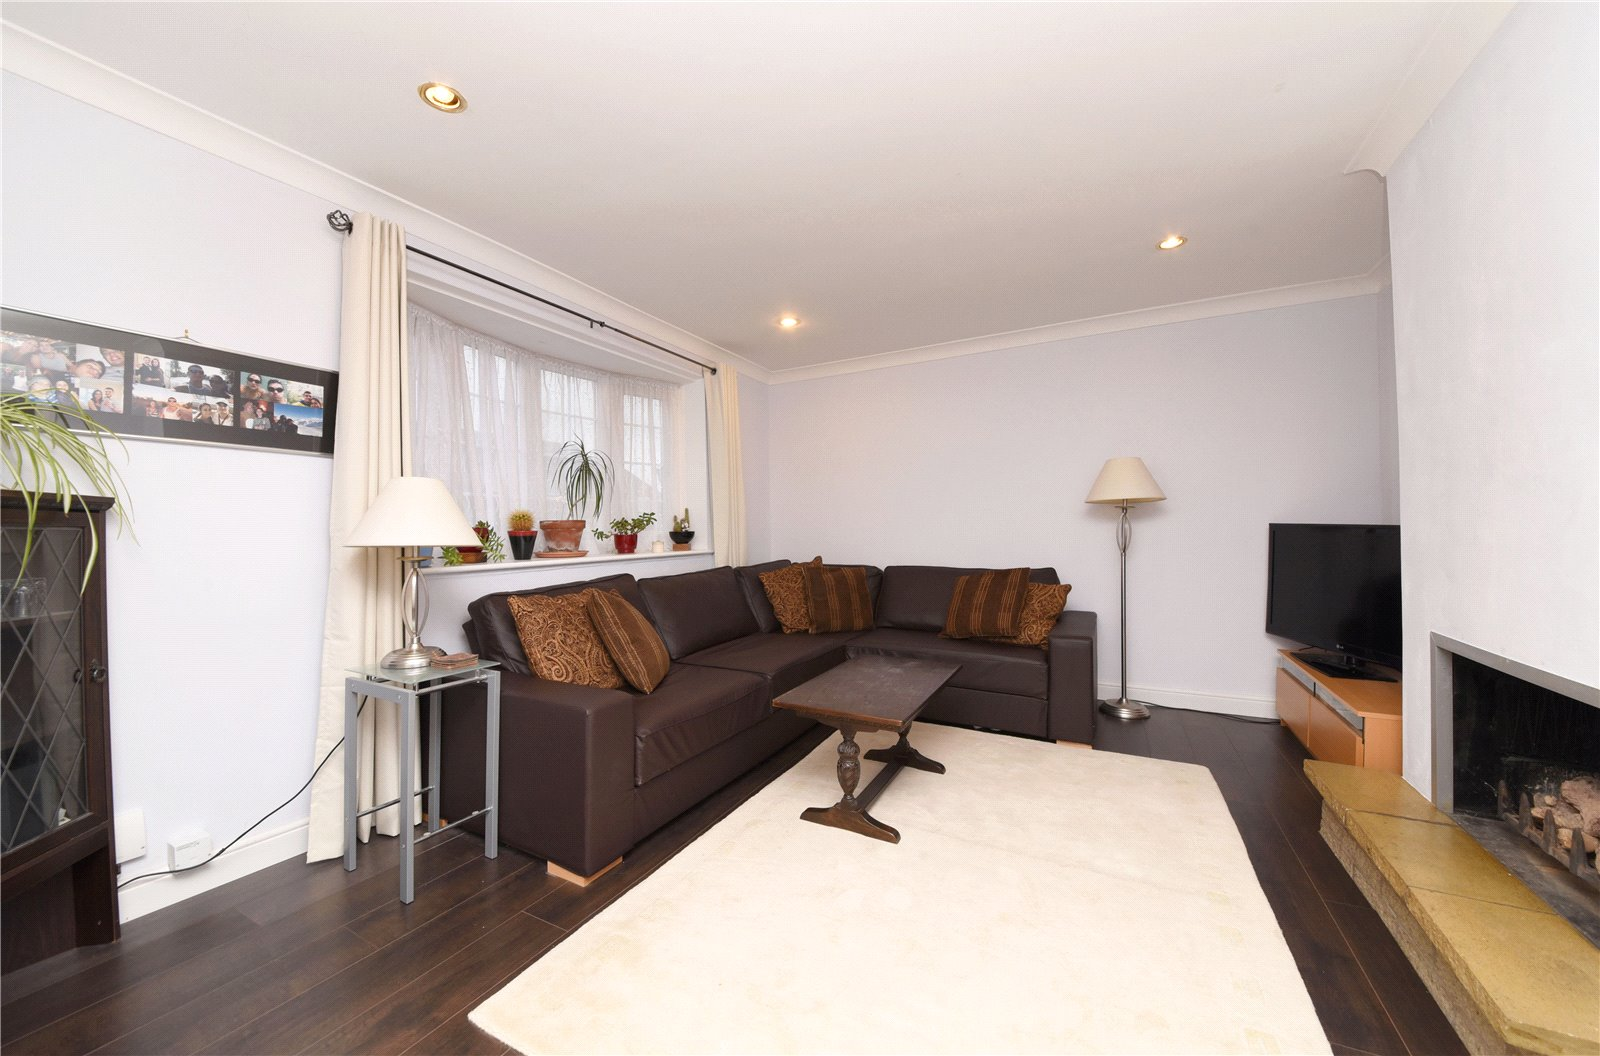 3 bed house for sale in Edgware, HA8 8XT 7